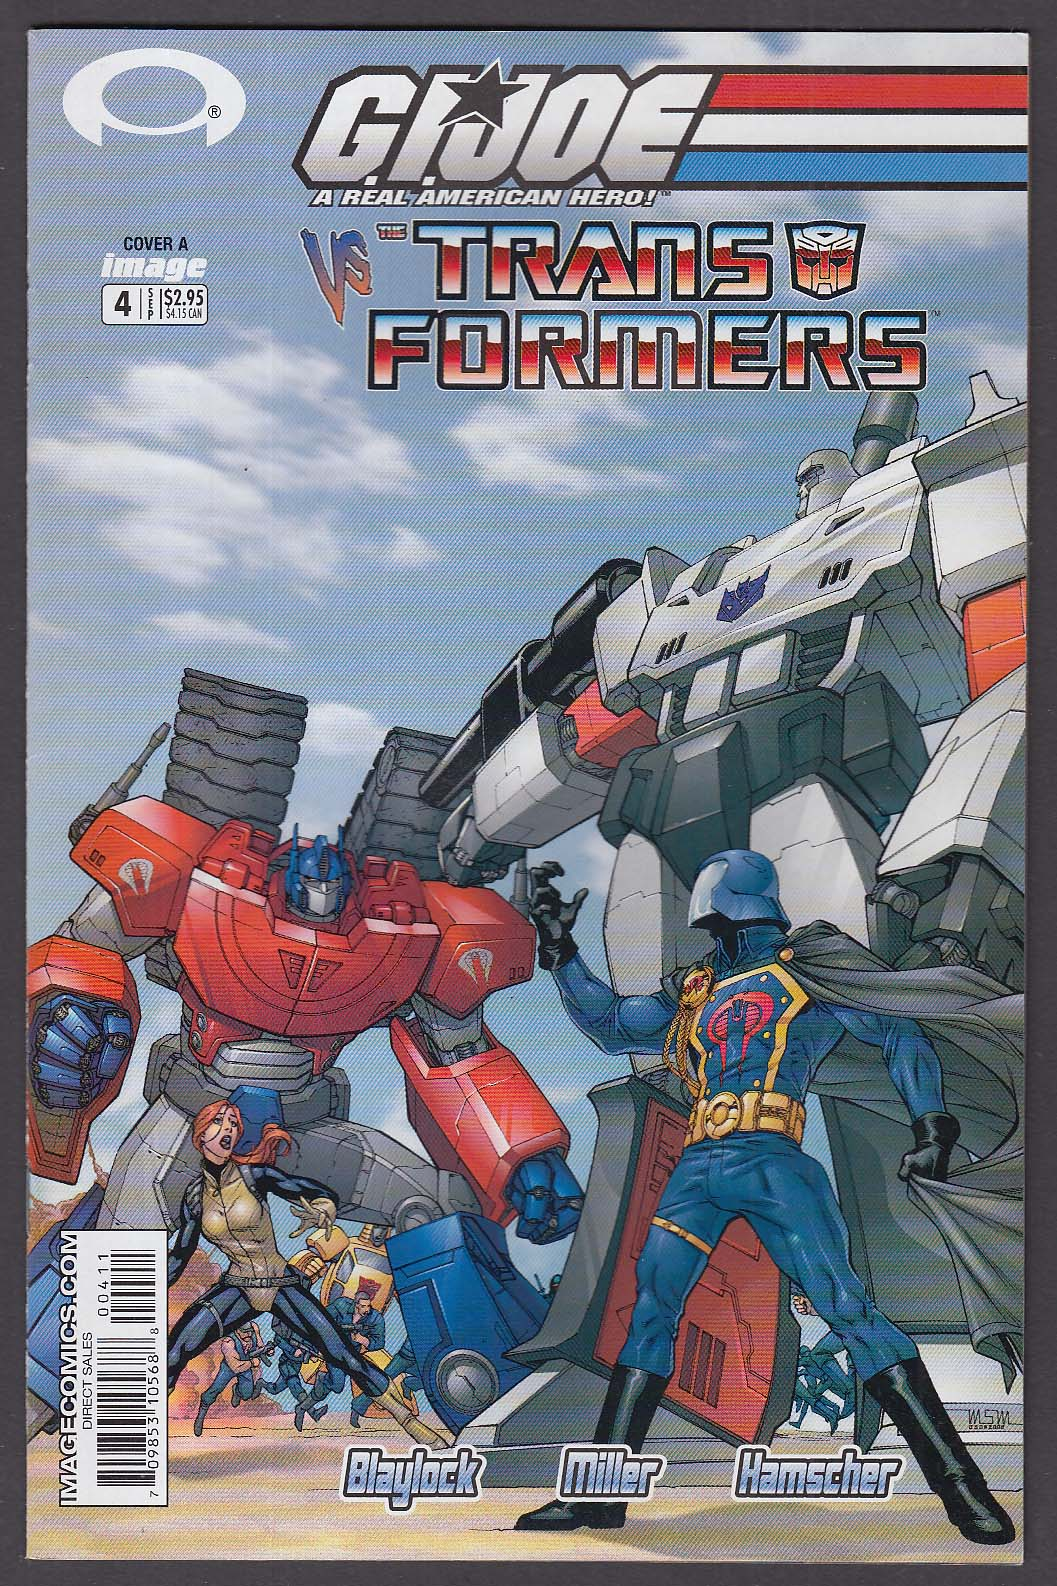 GI JOE vs TRANSFORMERS #4 Image comic book 9 2003 Cover A